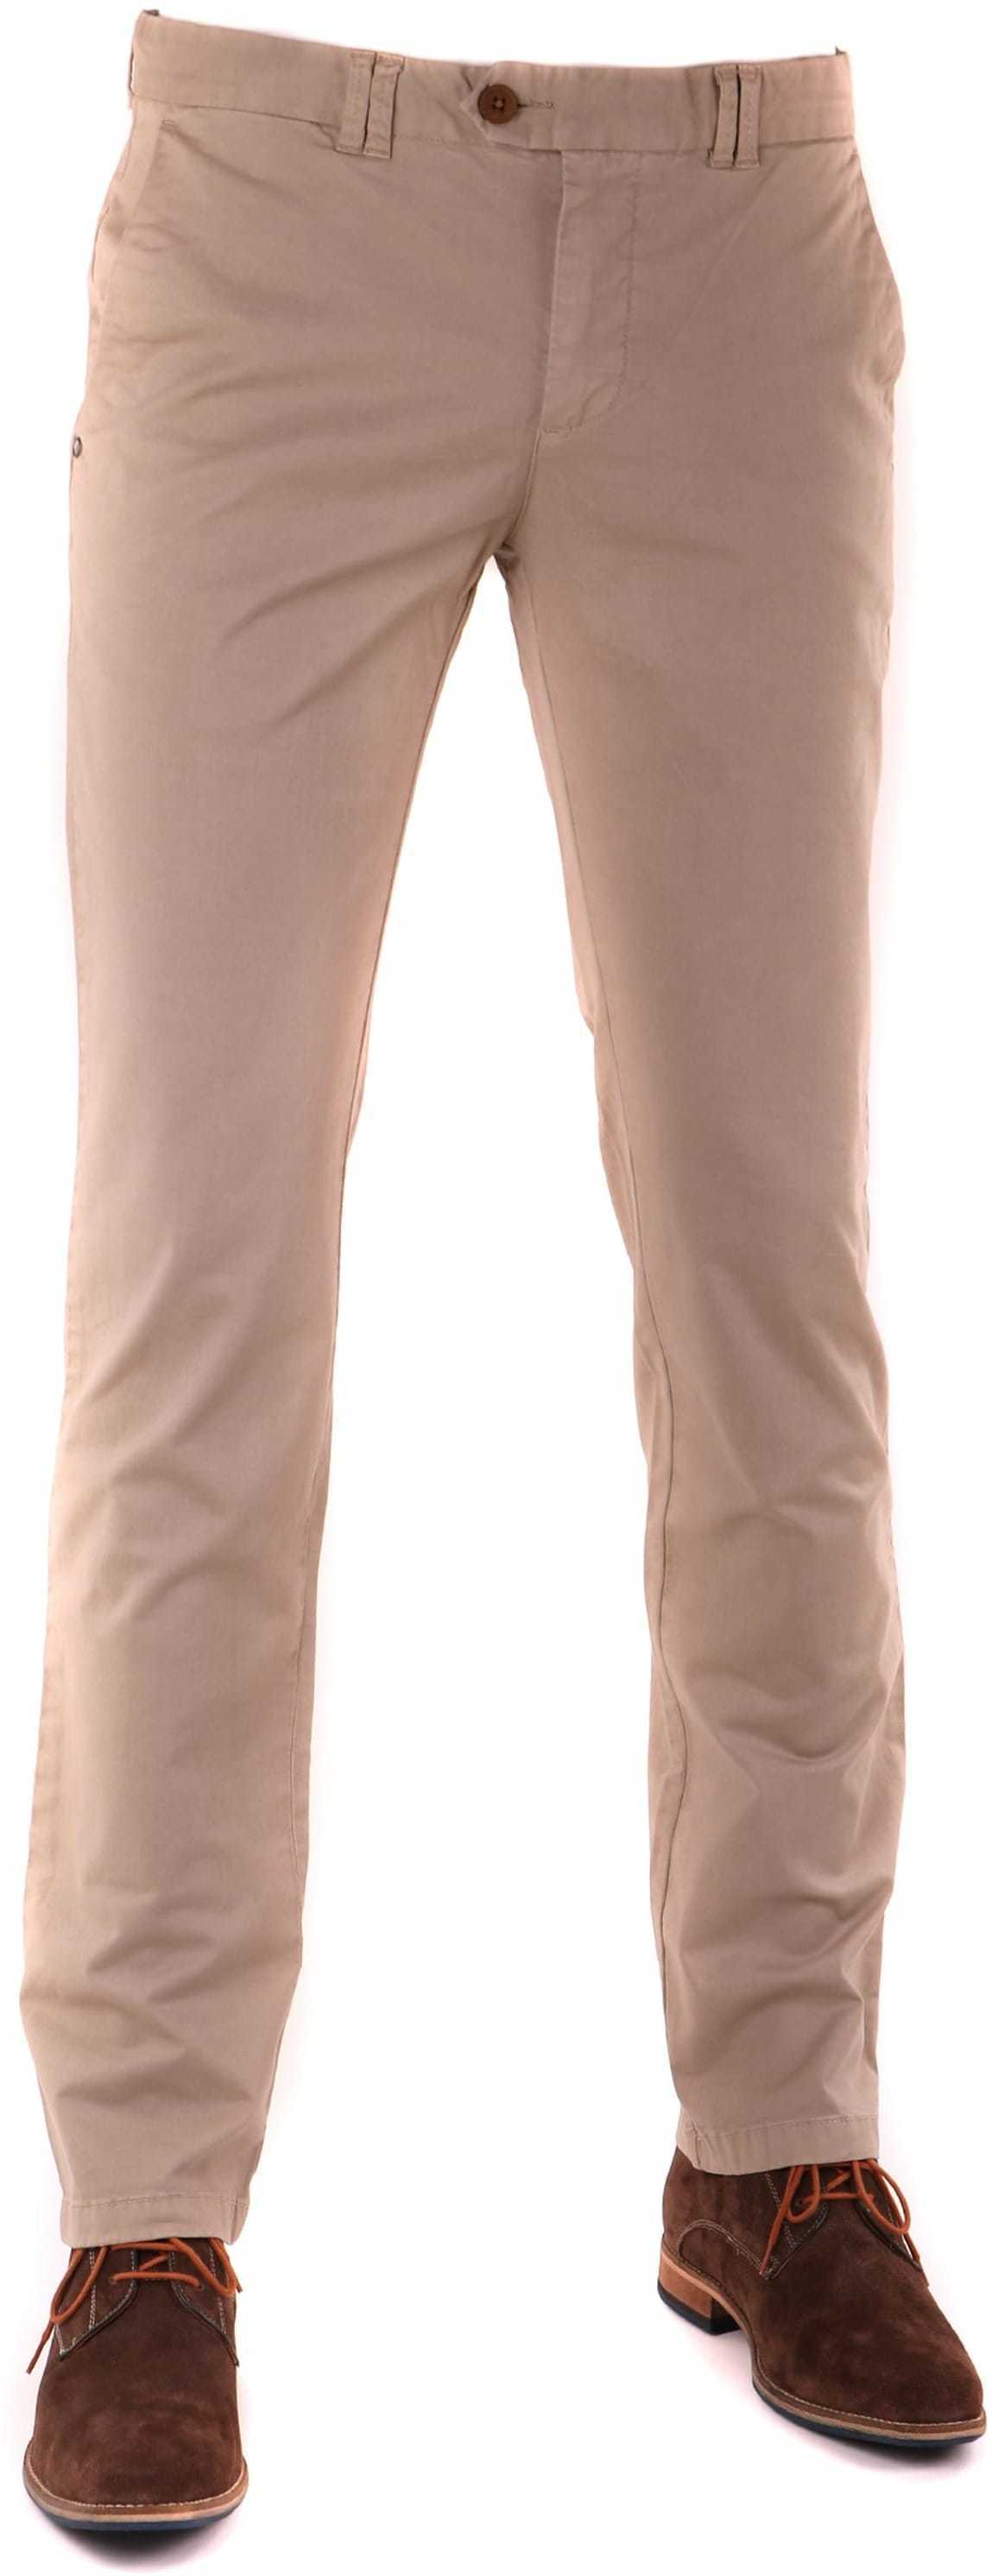 Suitable Chino Broek Khaki foto 0